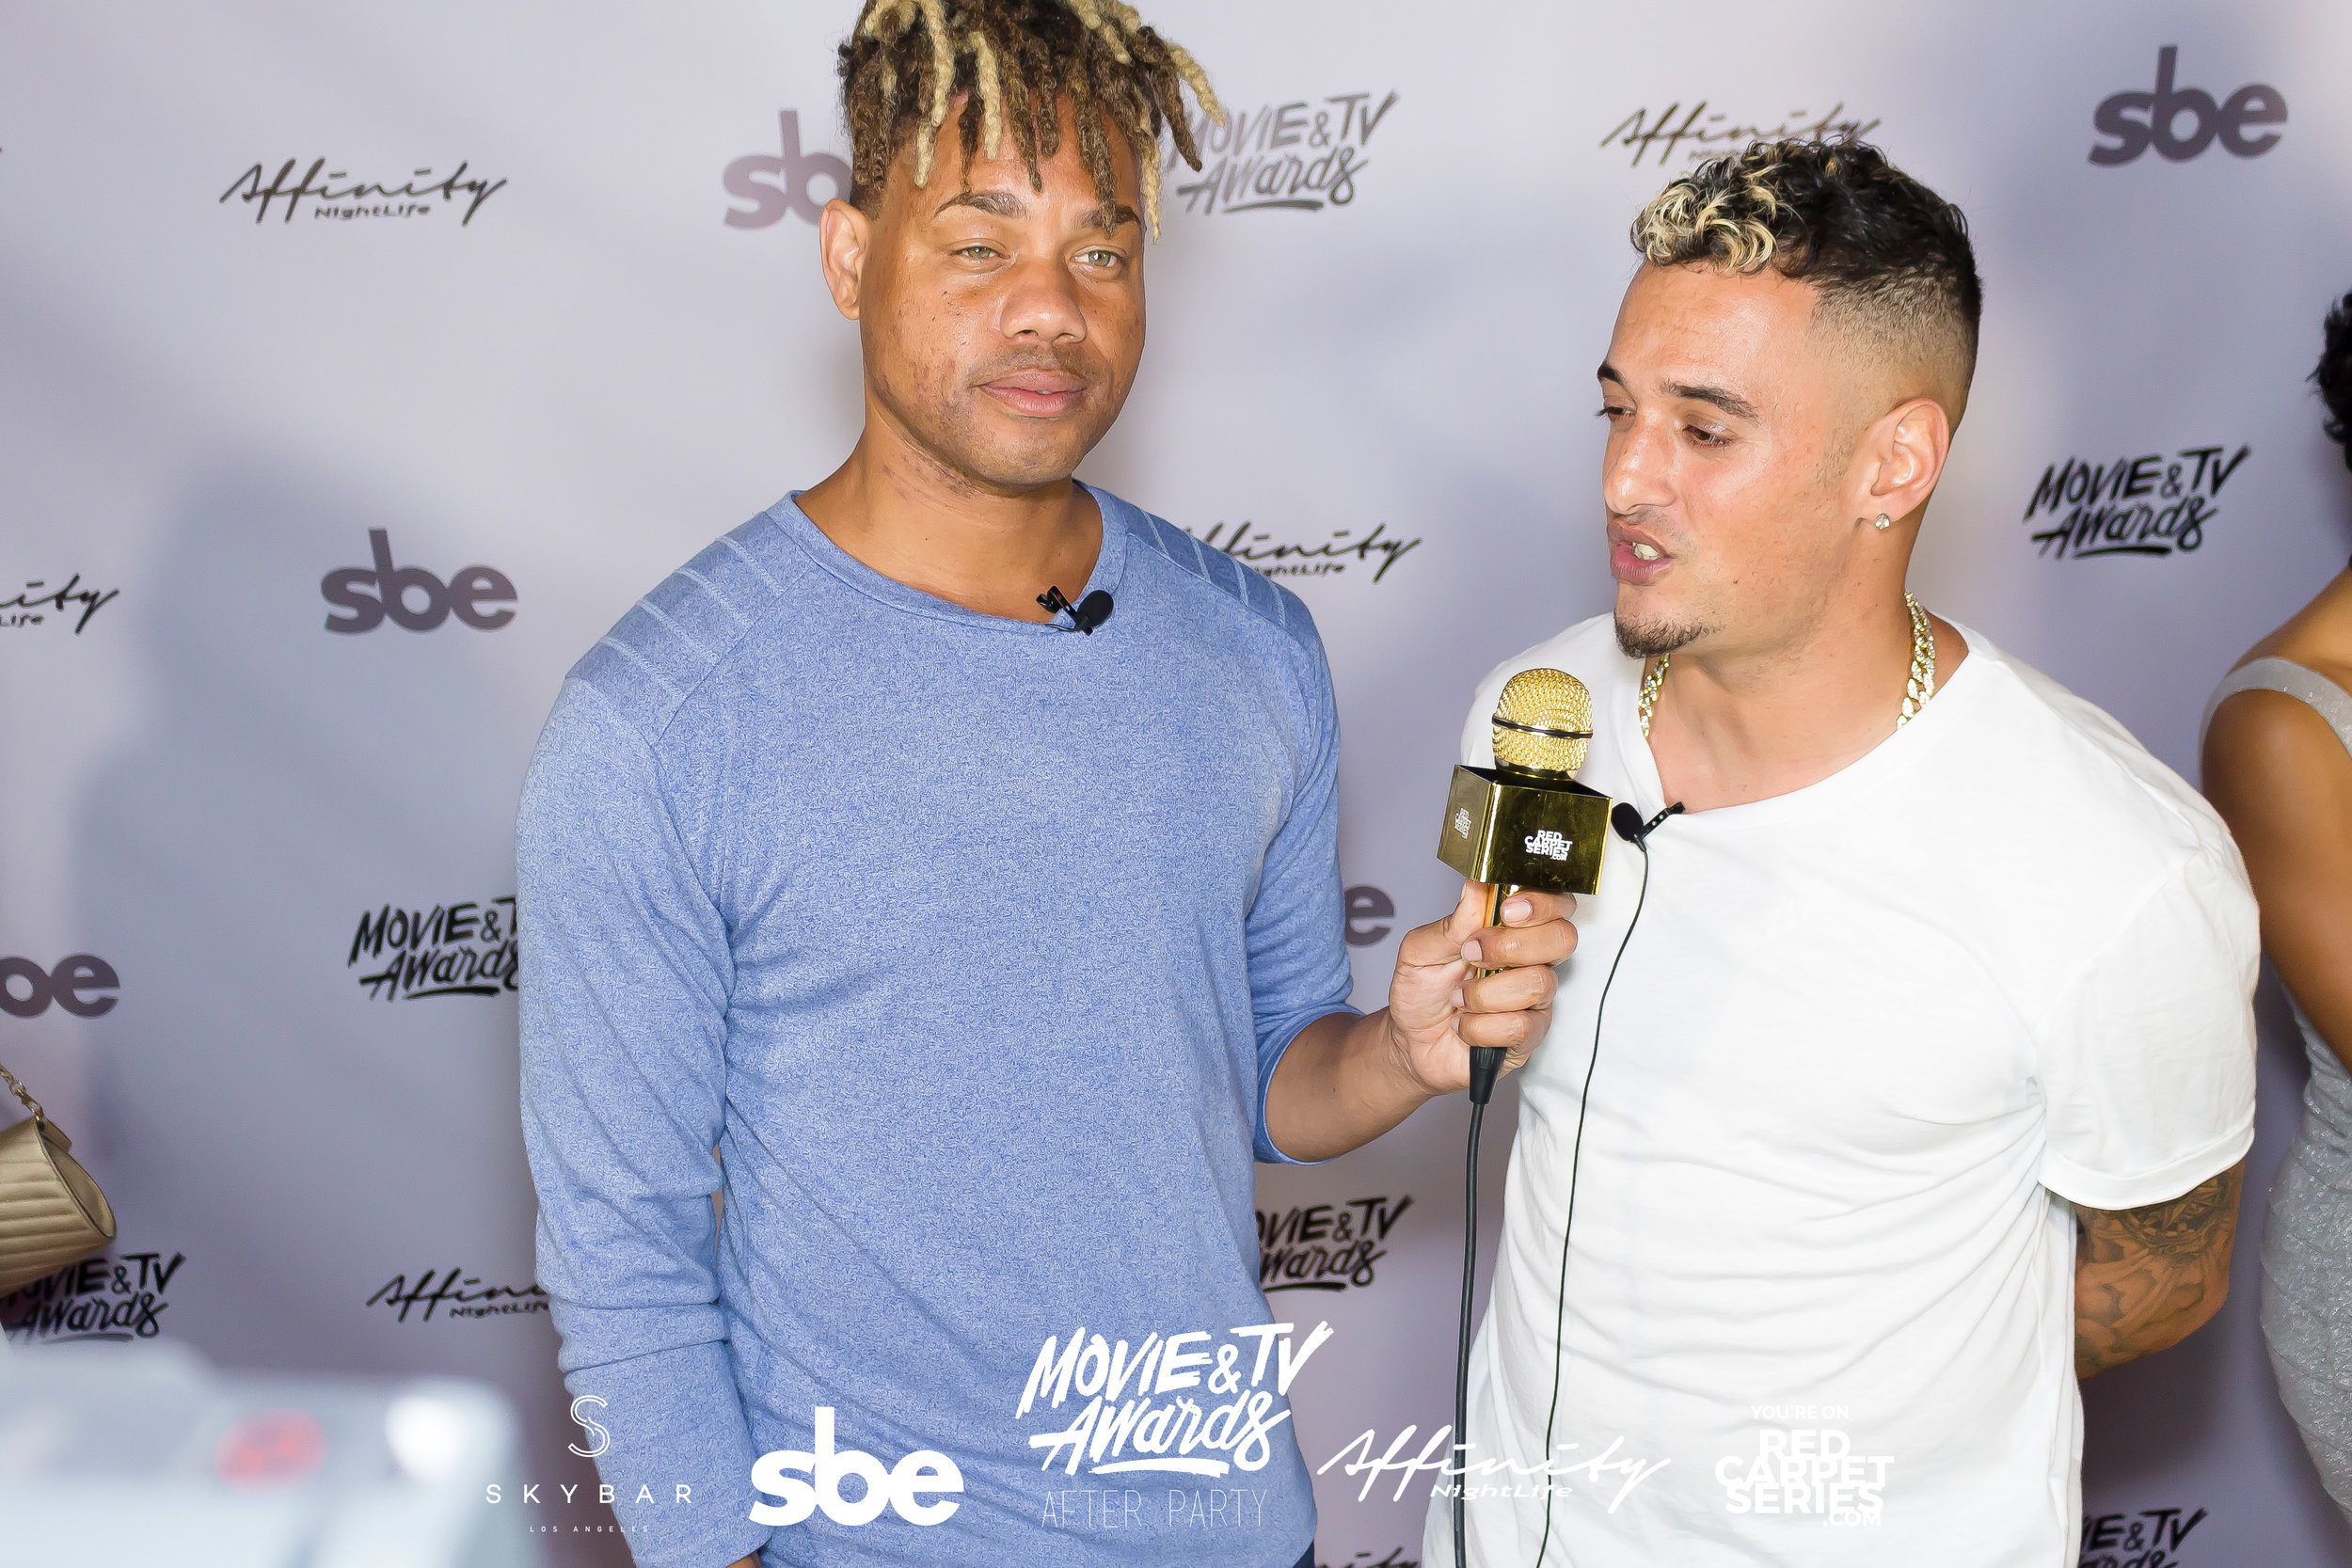 Affinity Nightlife MTV Movie & TV Awards After Party - Skybar at Mondrian - 06-15-19 - Vol. 1_97.jpg